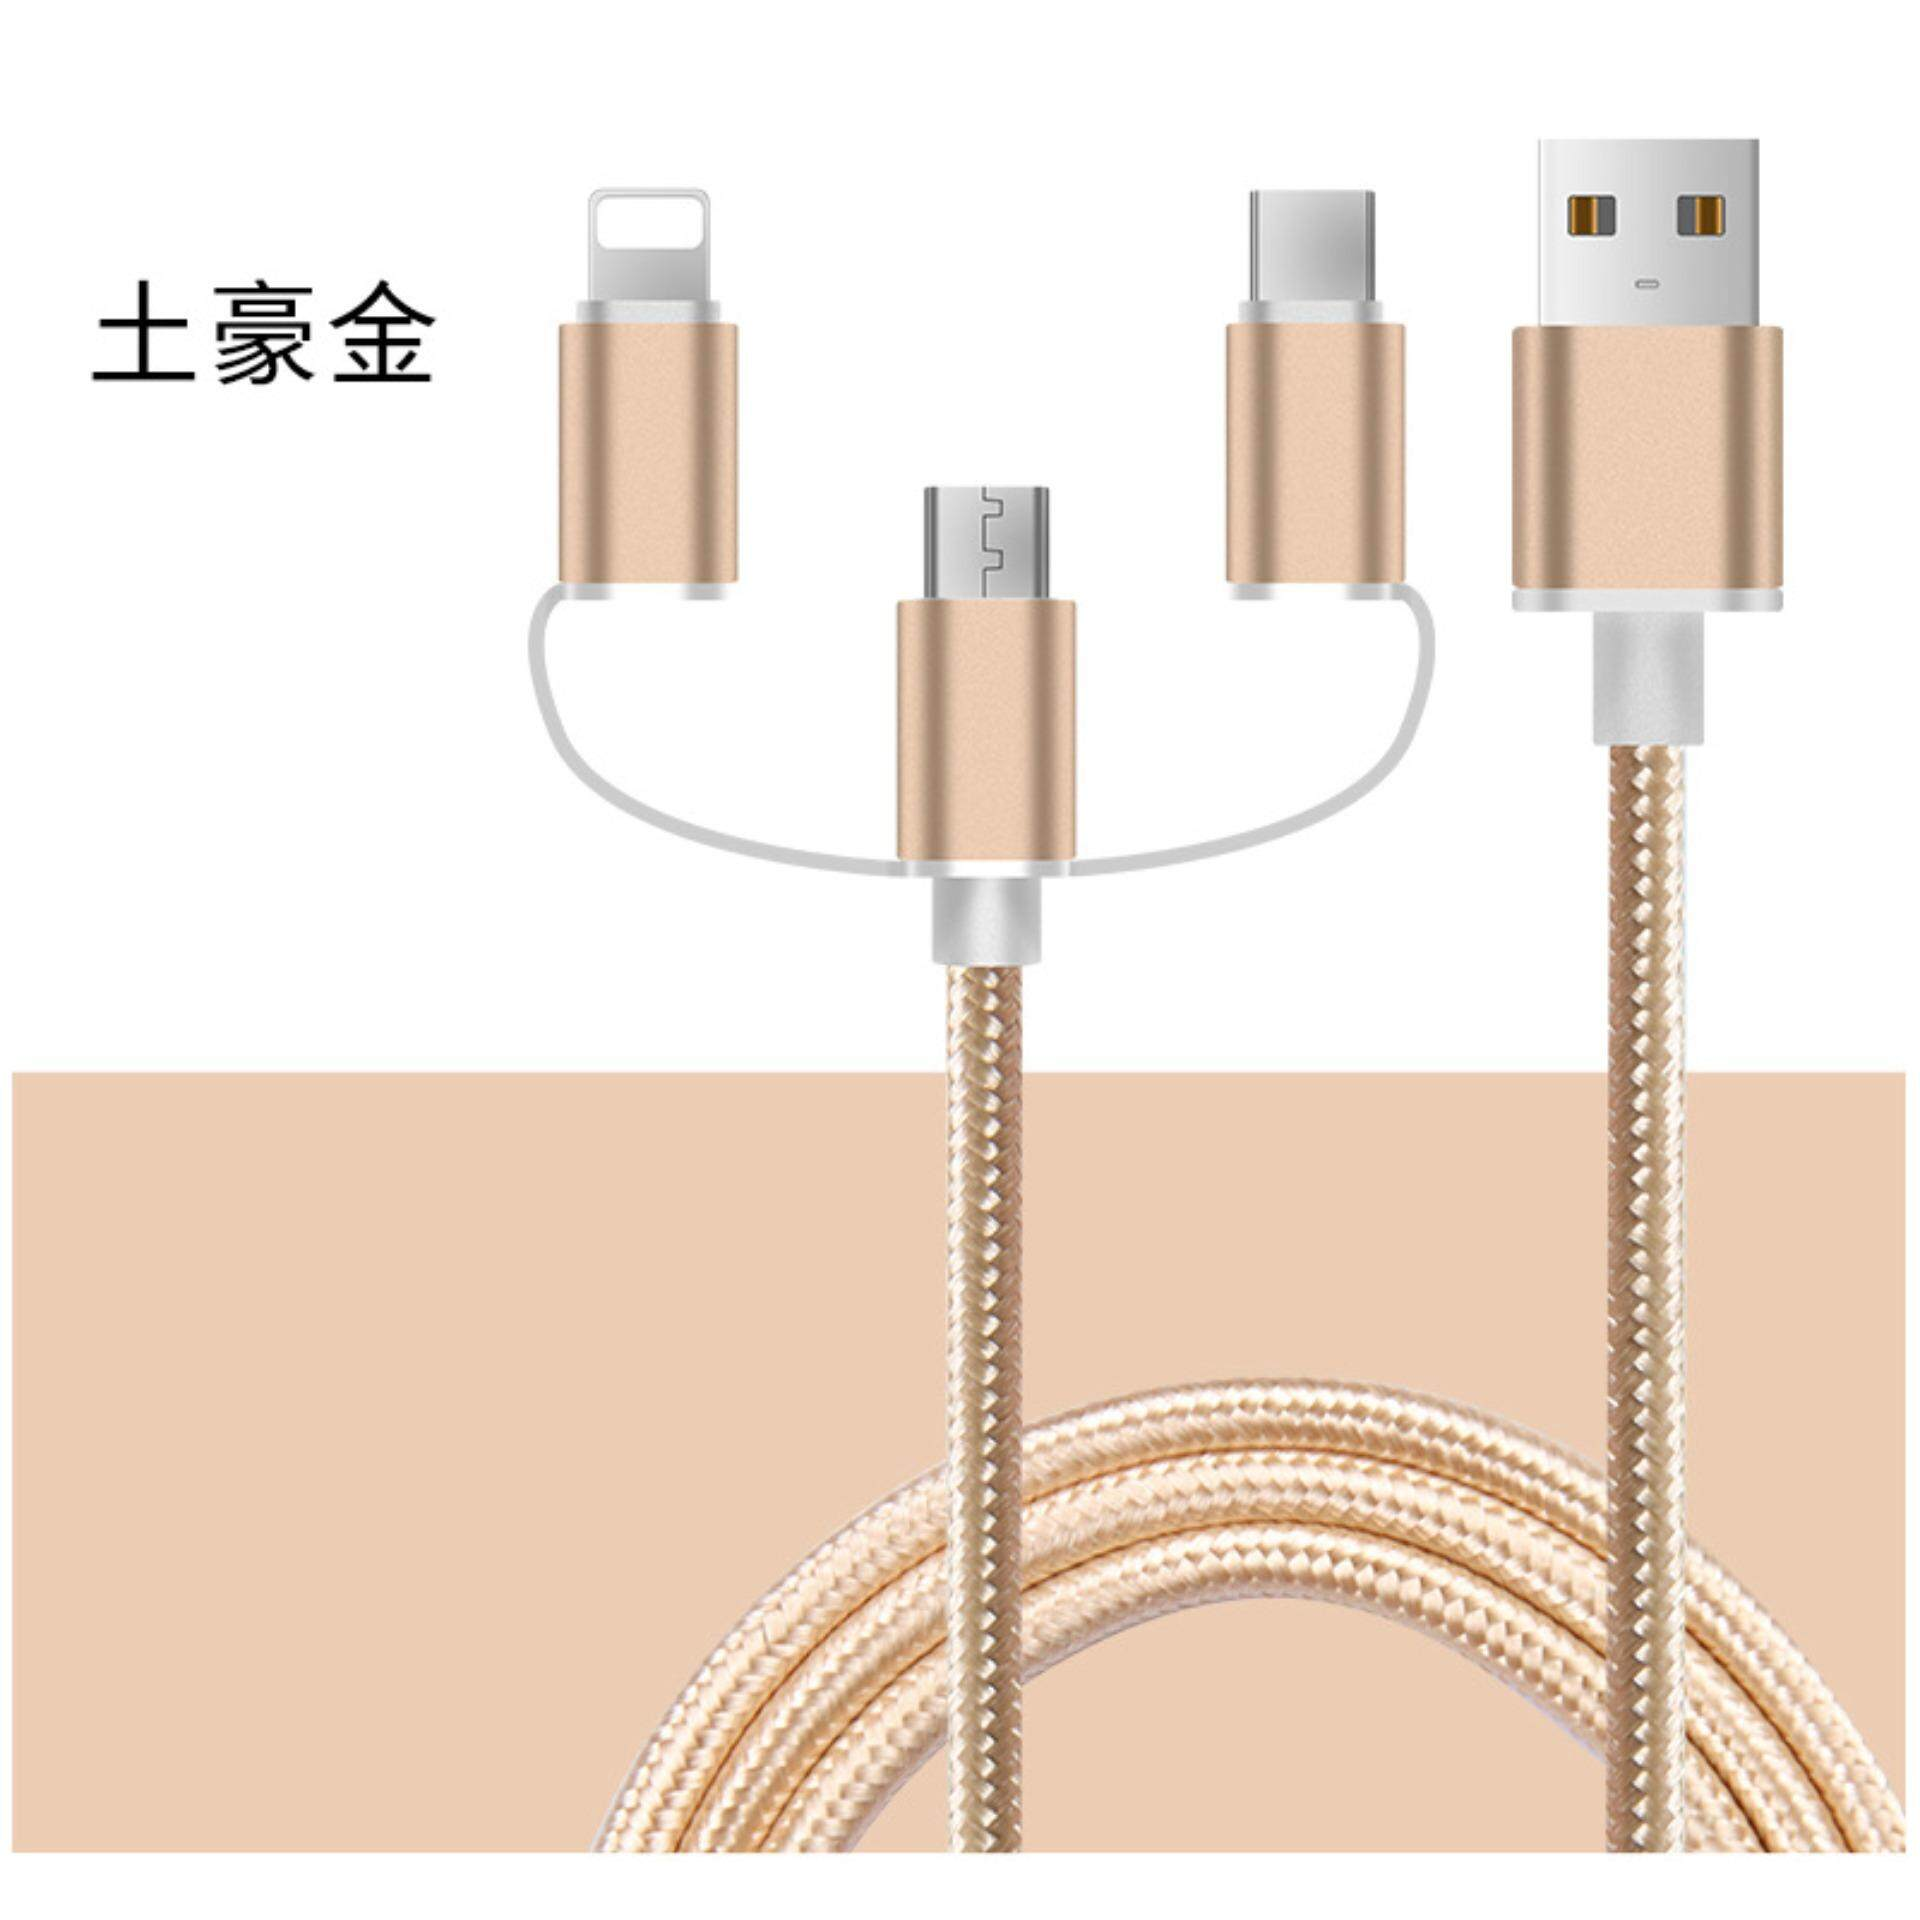 2 in 1 tipe C dan Android Micro Apple USB fast cable charging Tipe C kabel